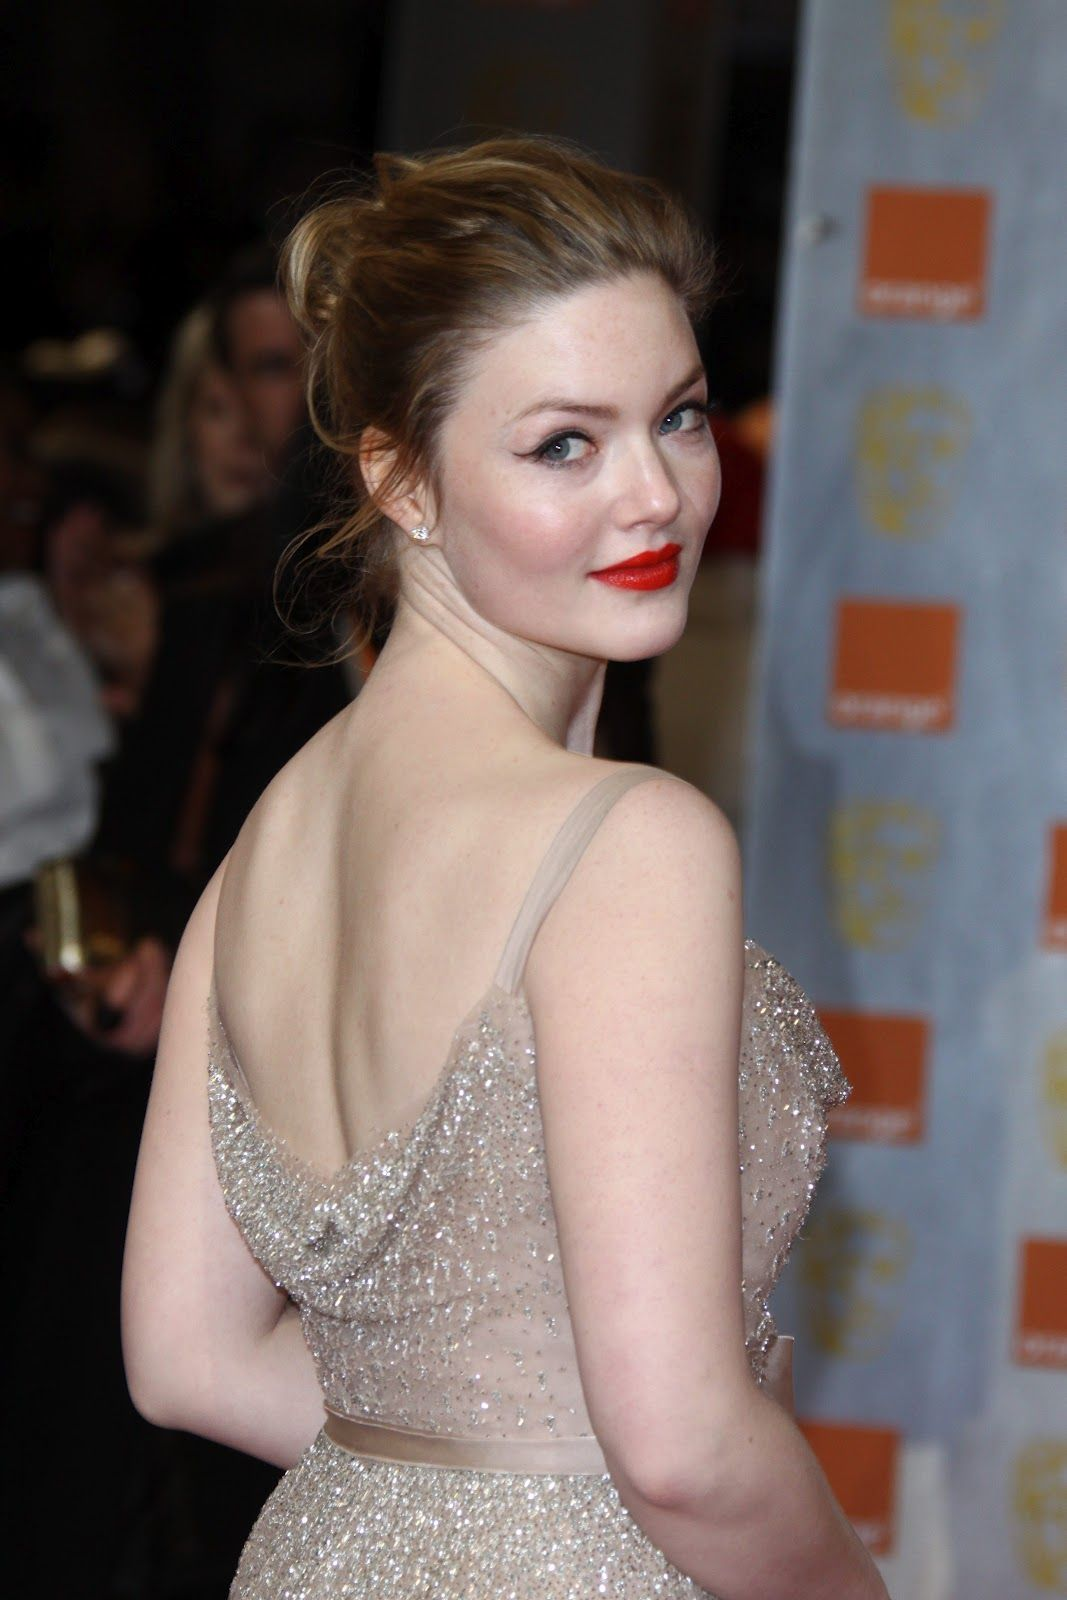 Celebrity Holliday Grainger naked (37 photo), Selfie